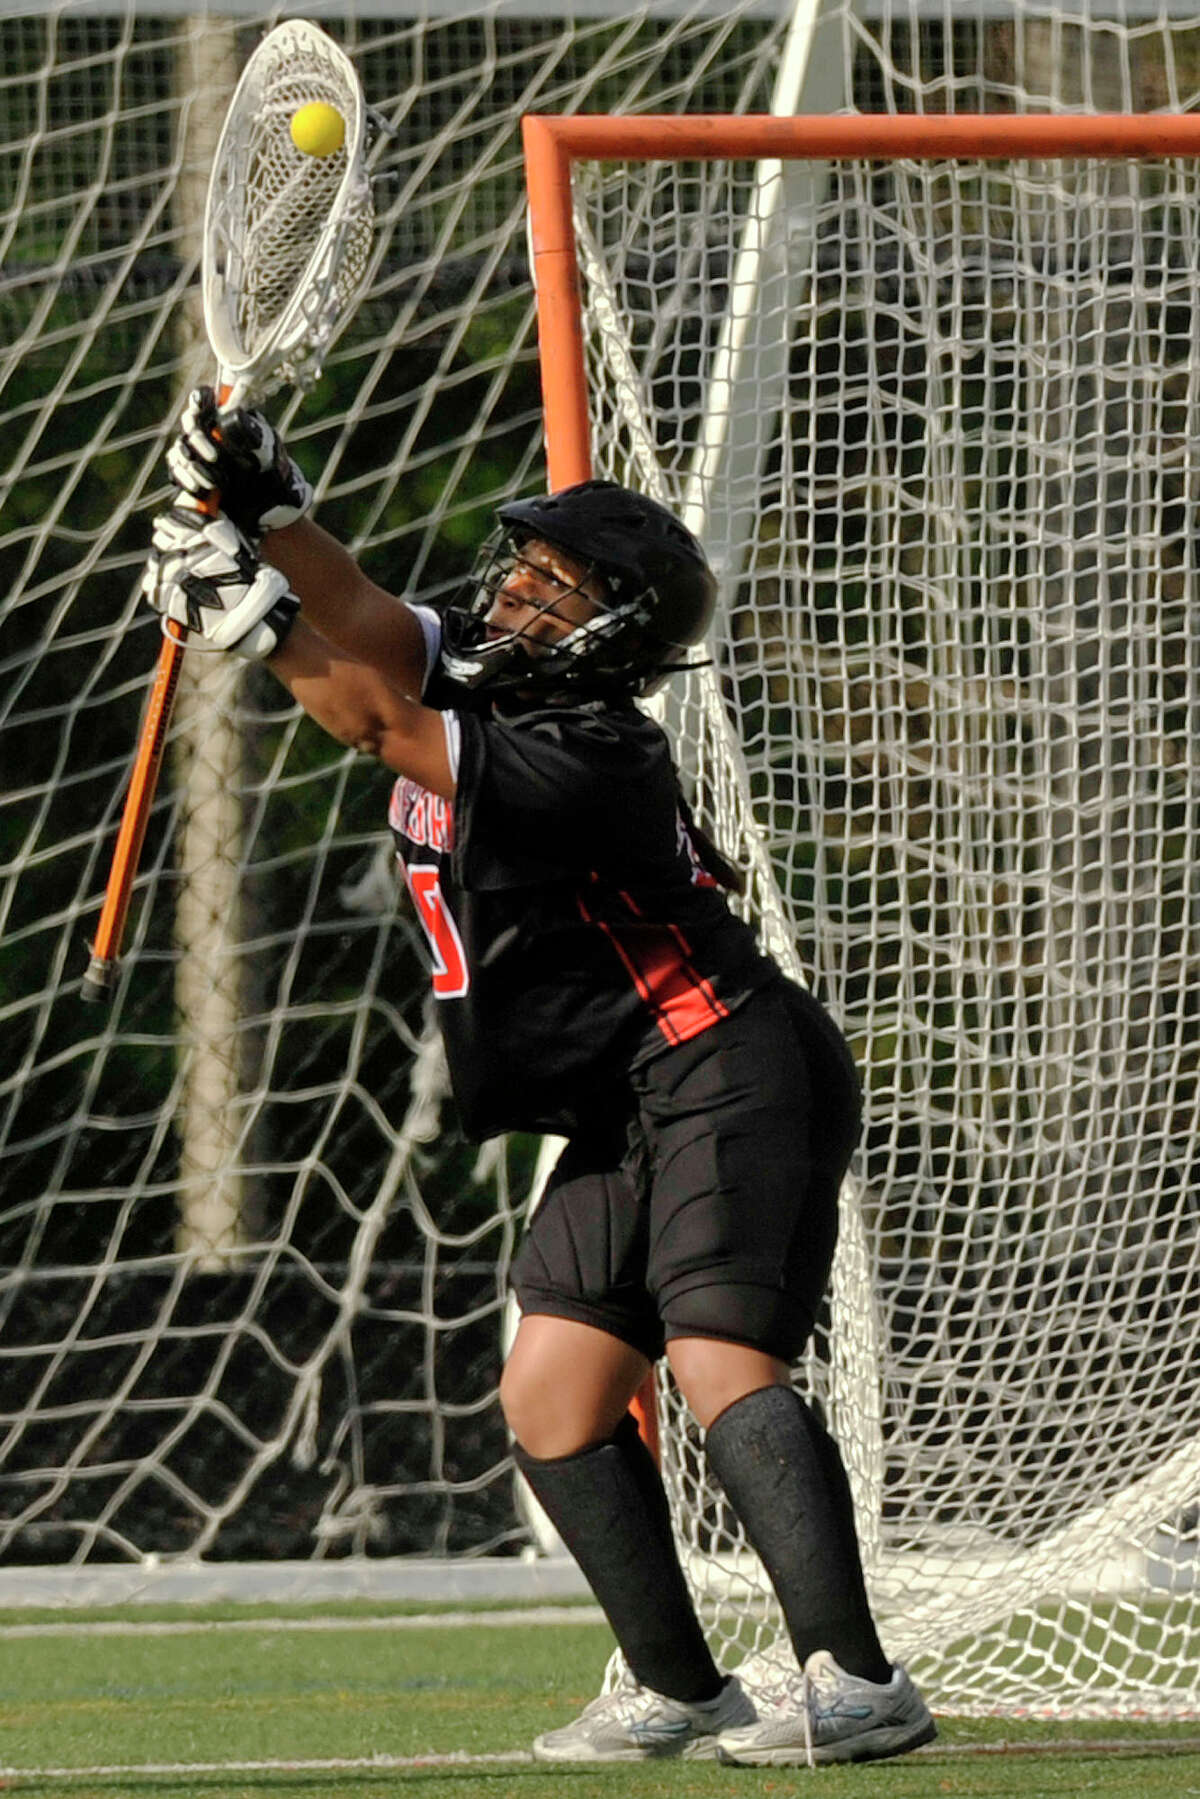 Stamford goalie Lesly Sanchez makes a save during the Black Knights' lacrosse game against Westhill at Westhill High School in Stamford, Conn., on Tuesday, May 13, 2014. Stamford won, 18-2.